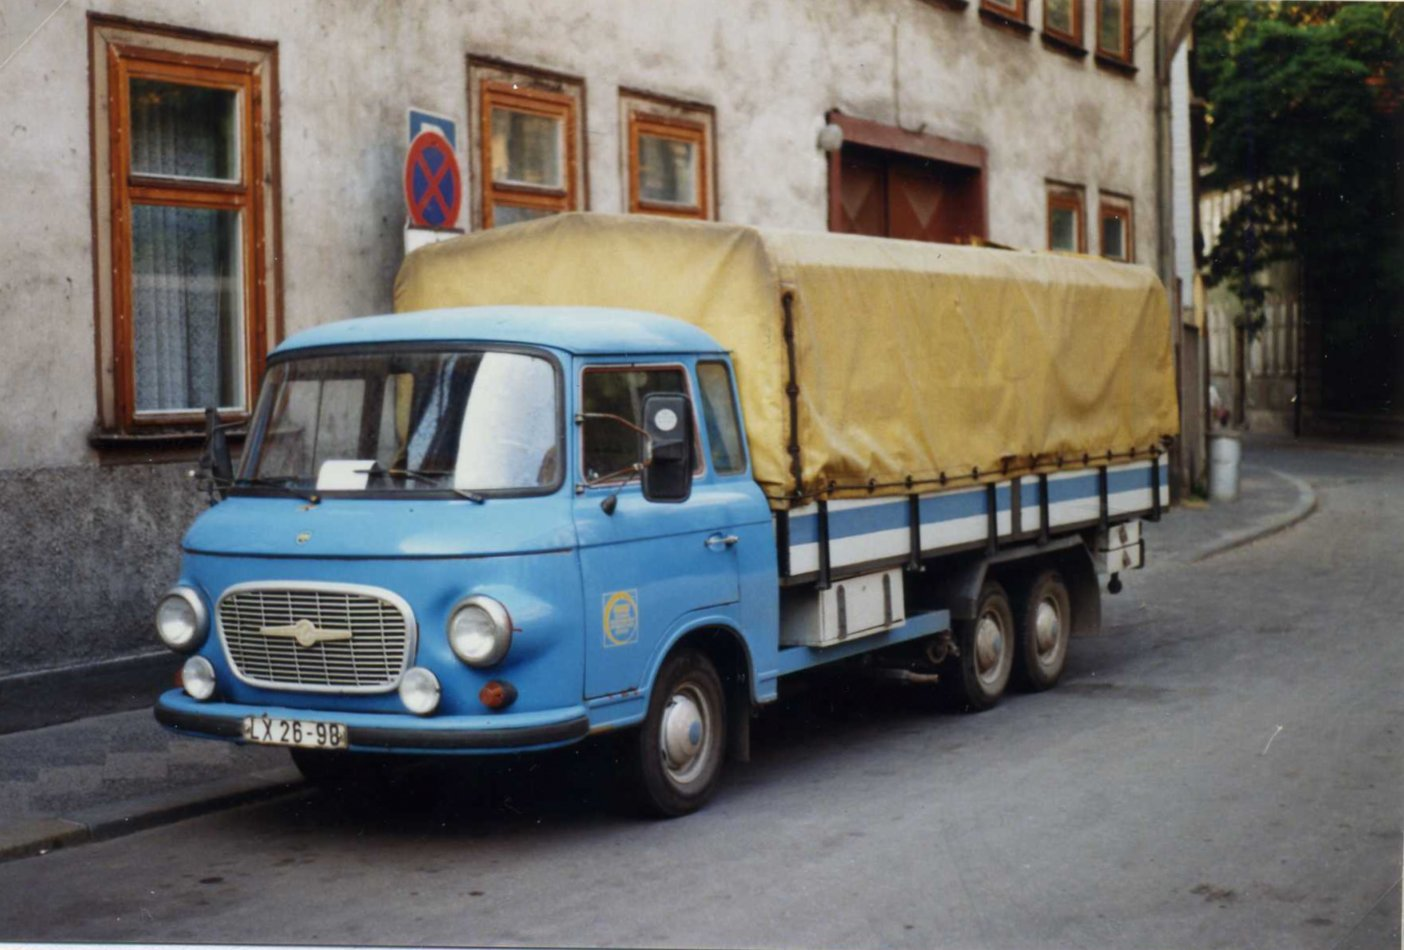 file barkas b1000 twin axle lkw lx 26 98 erfurt ddr august 1989 flickr. Black Bedroom Furniture Sets. Home Design Ideas